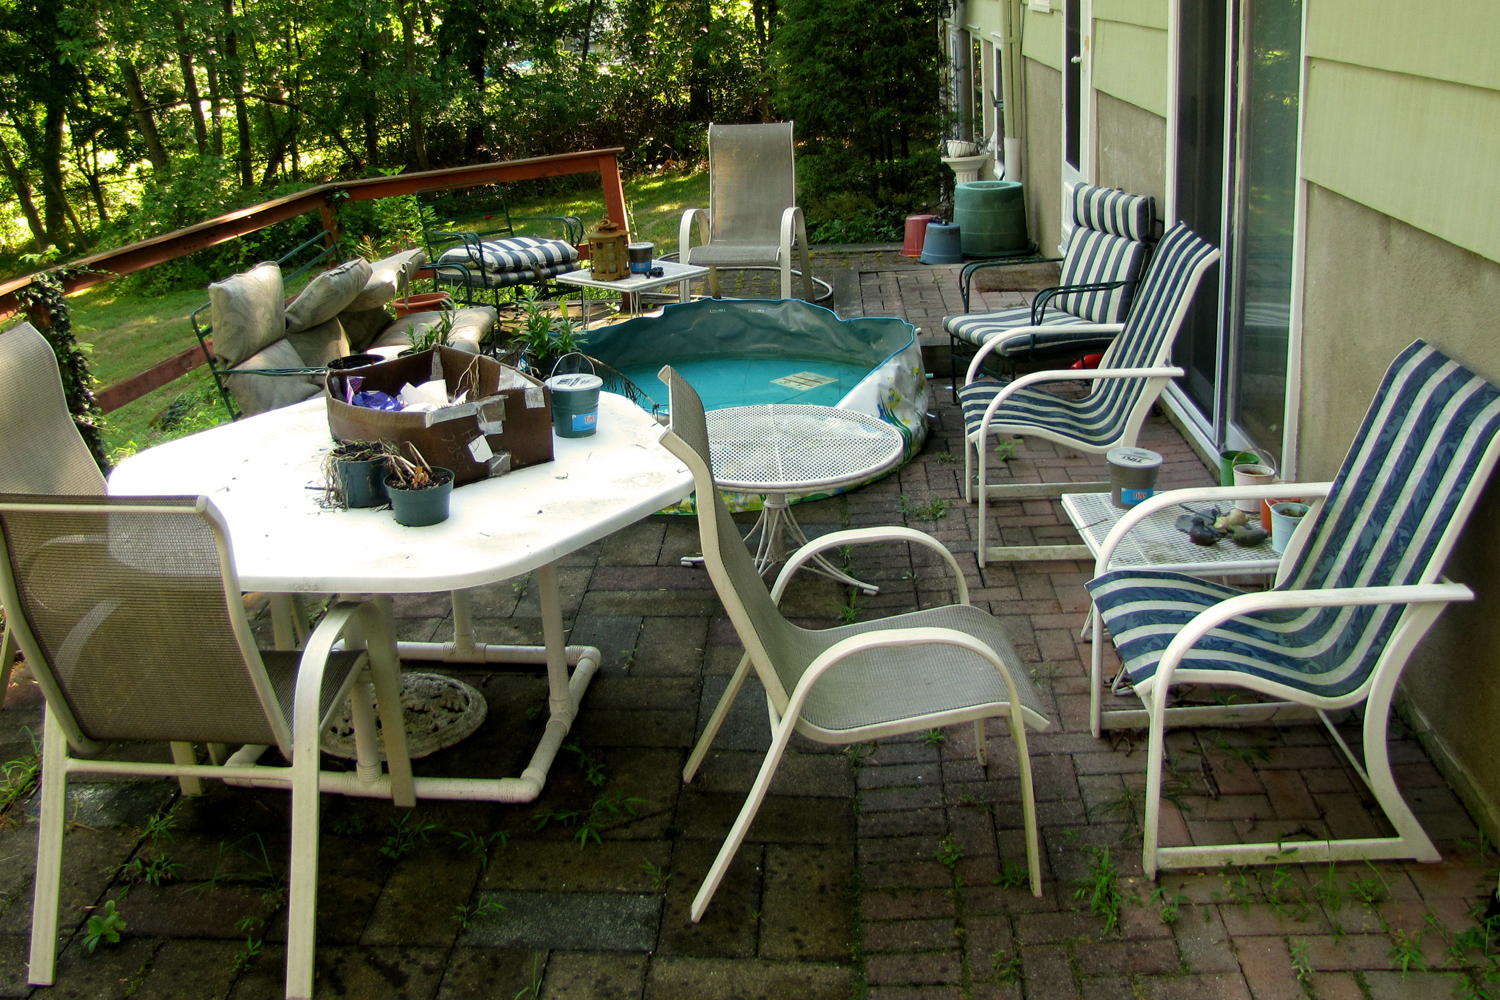 By the time fall rolls around, it's usually a good time for a patio clean-up.